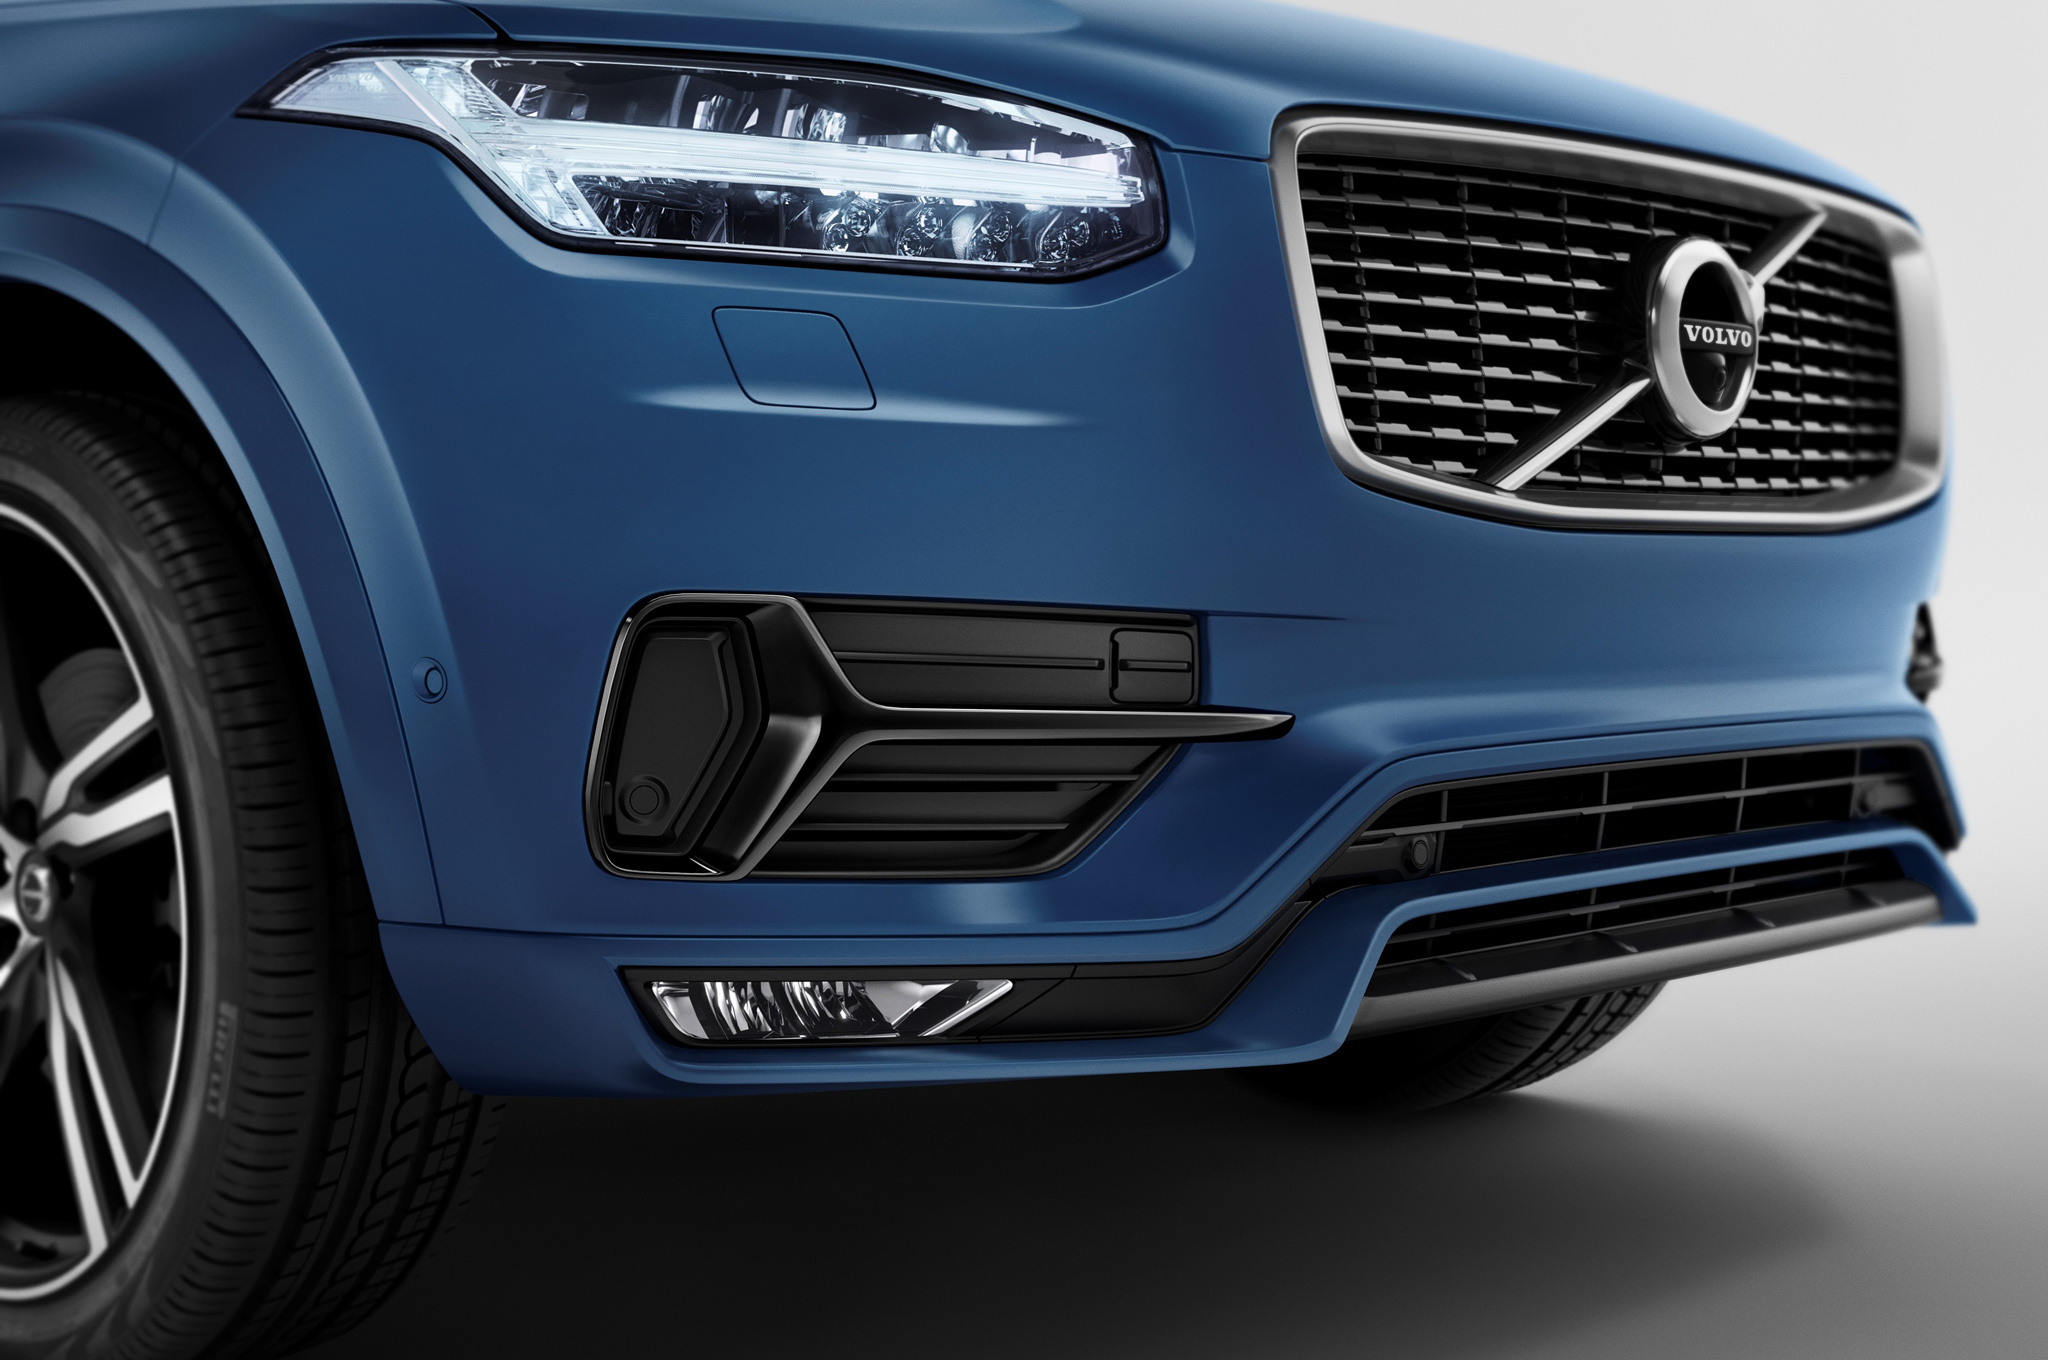 2016 Volvo Xc90 R Design Front Bumper And Headlamp (Photo 2 of 18)